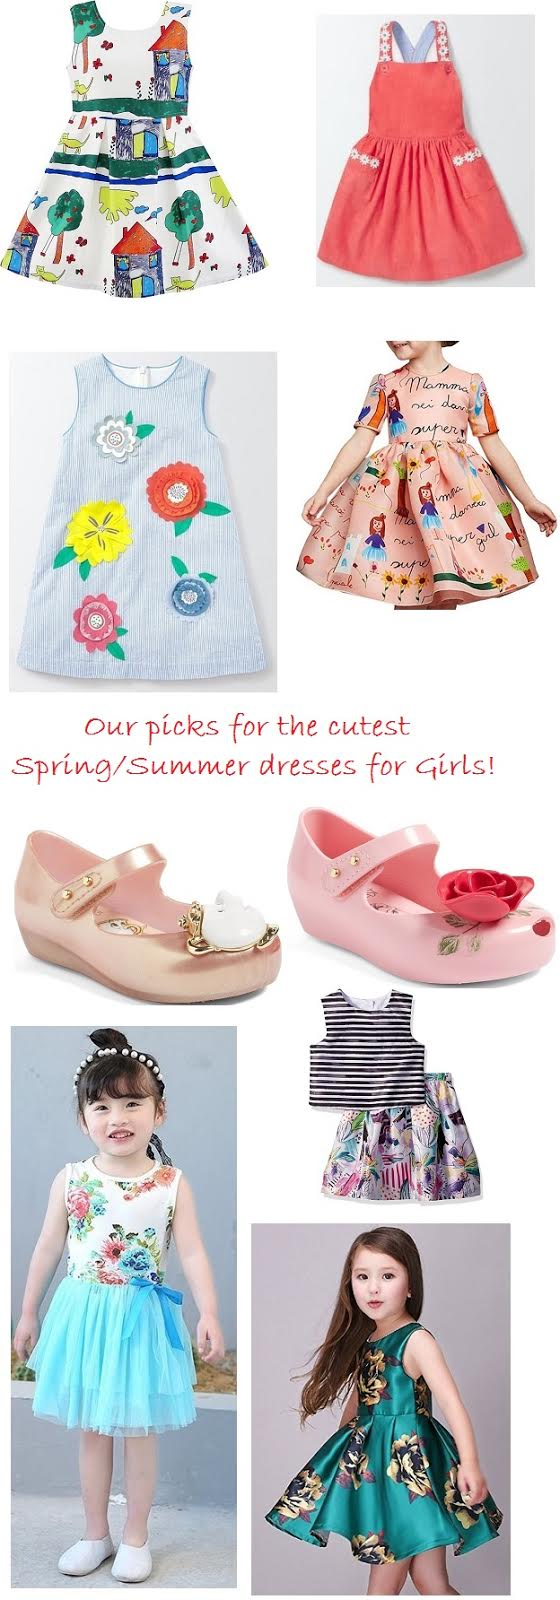 Summerdresses 1